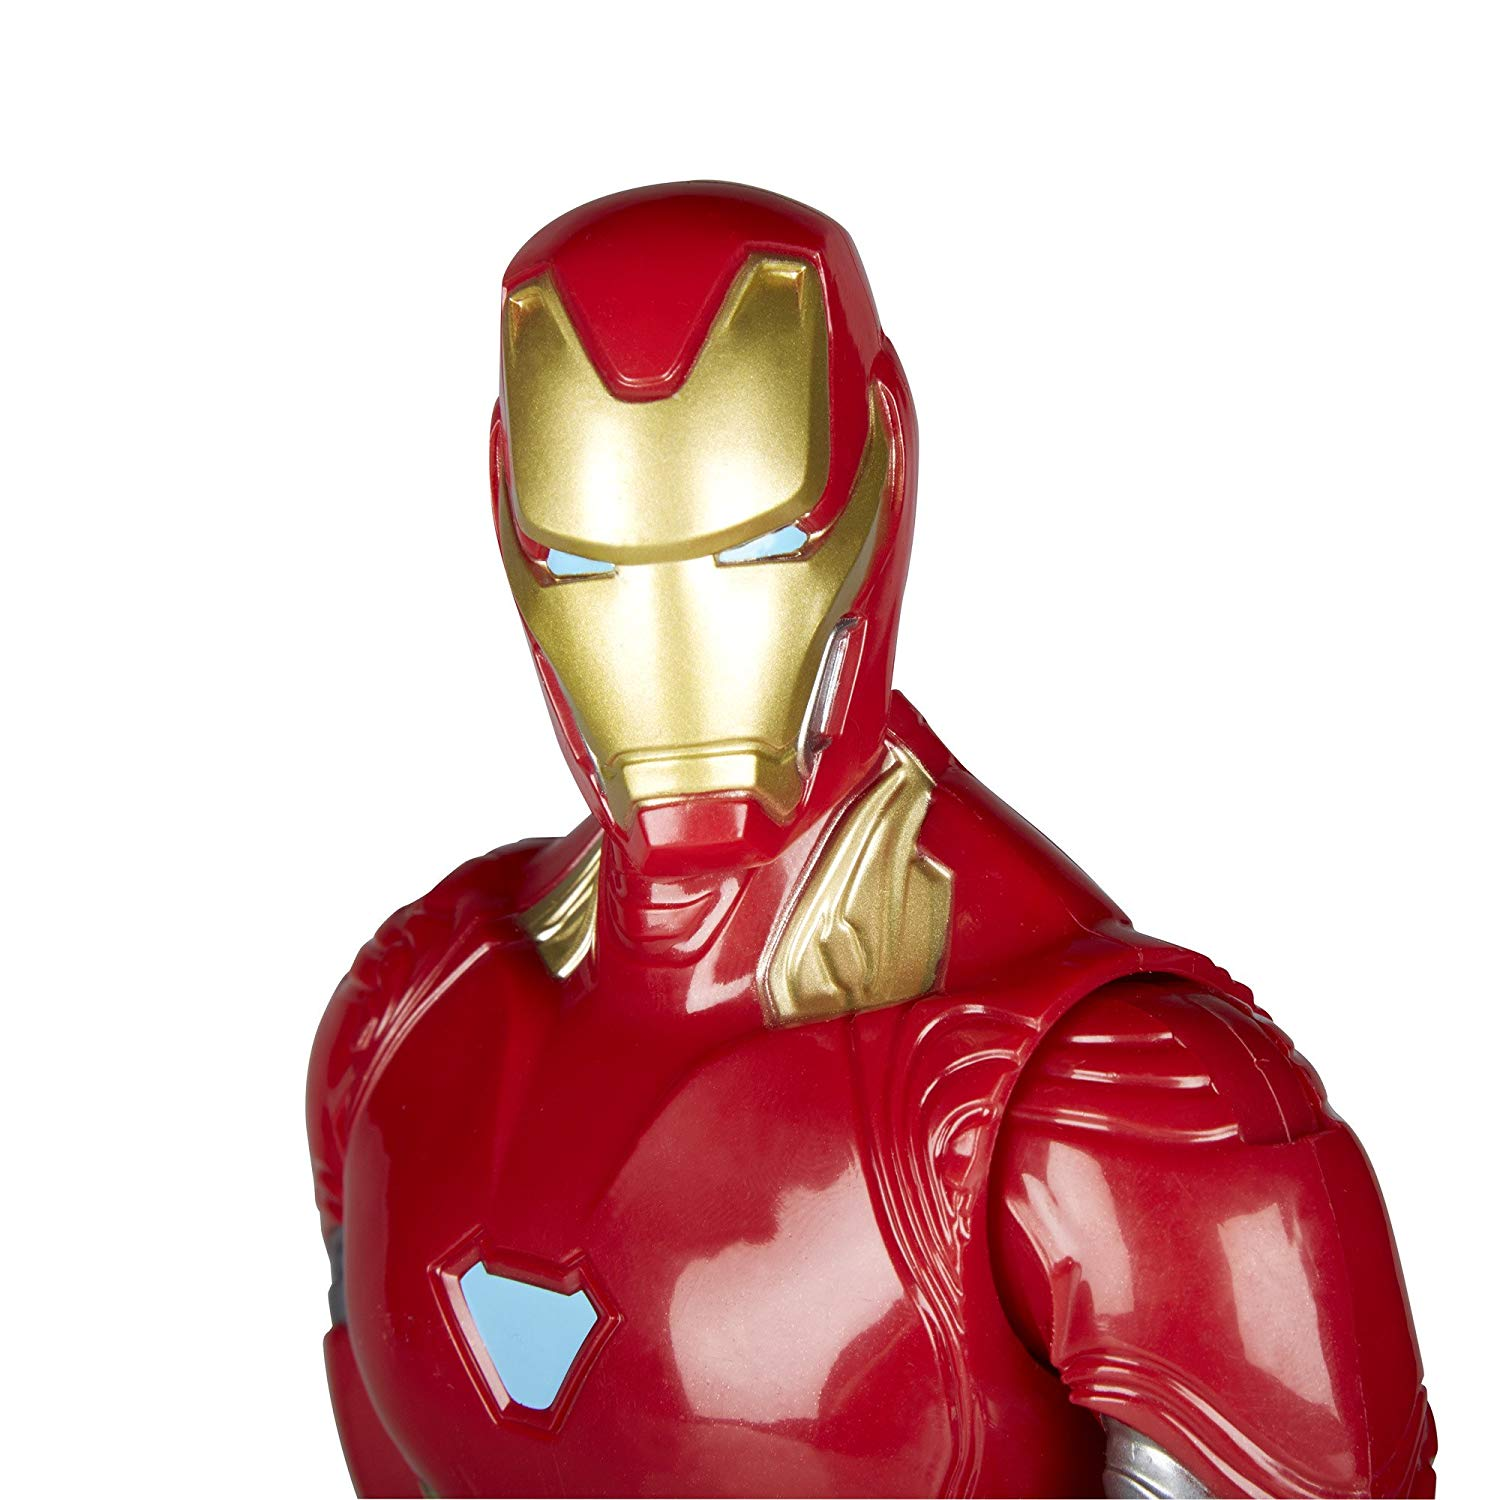 Marvel Infinity War Hero Series Iron Man figure